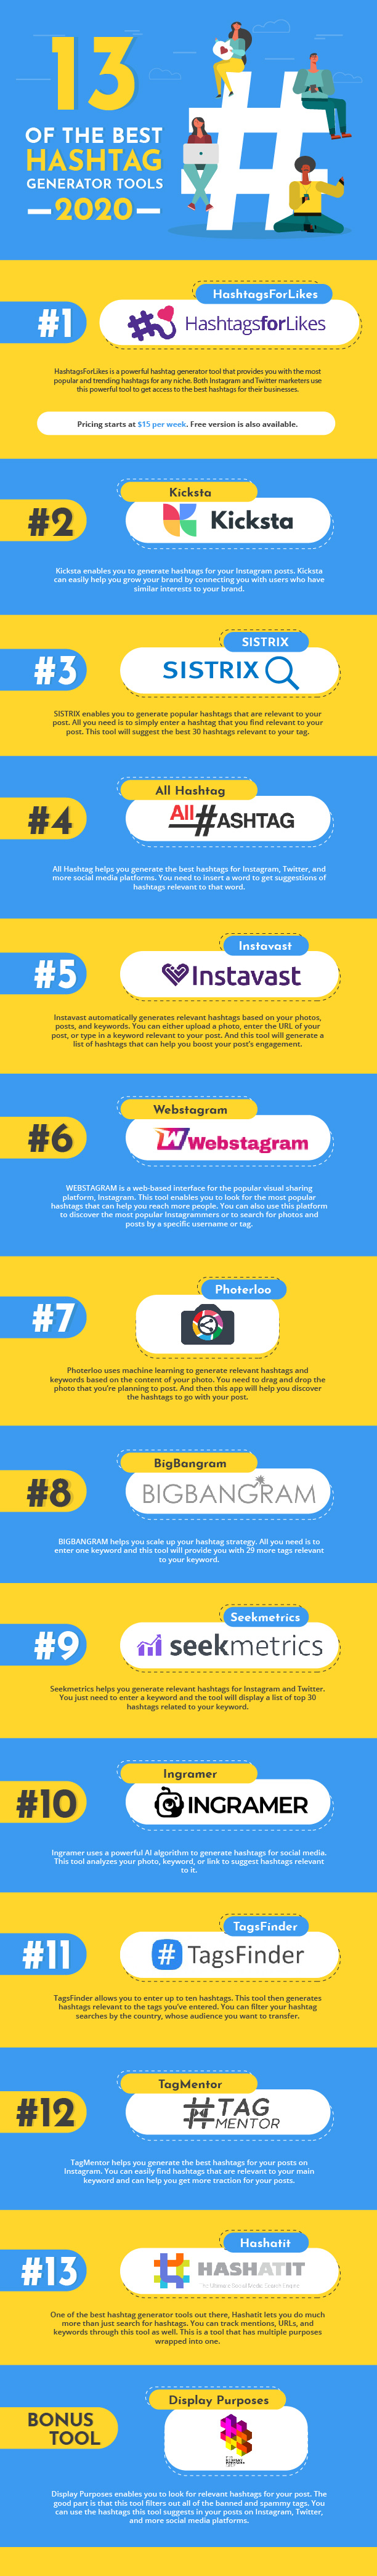 The Best Instagram Hashtag Generator Tools You Can Use